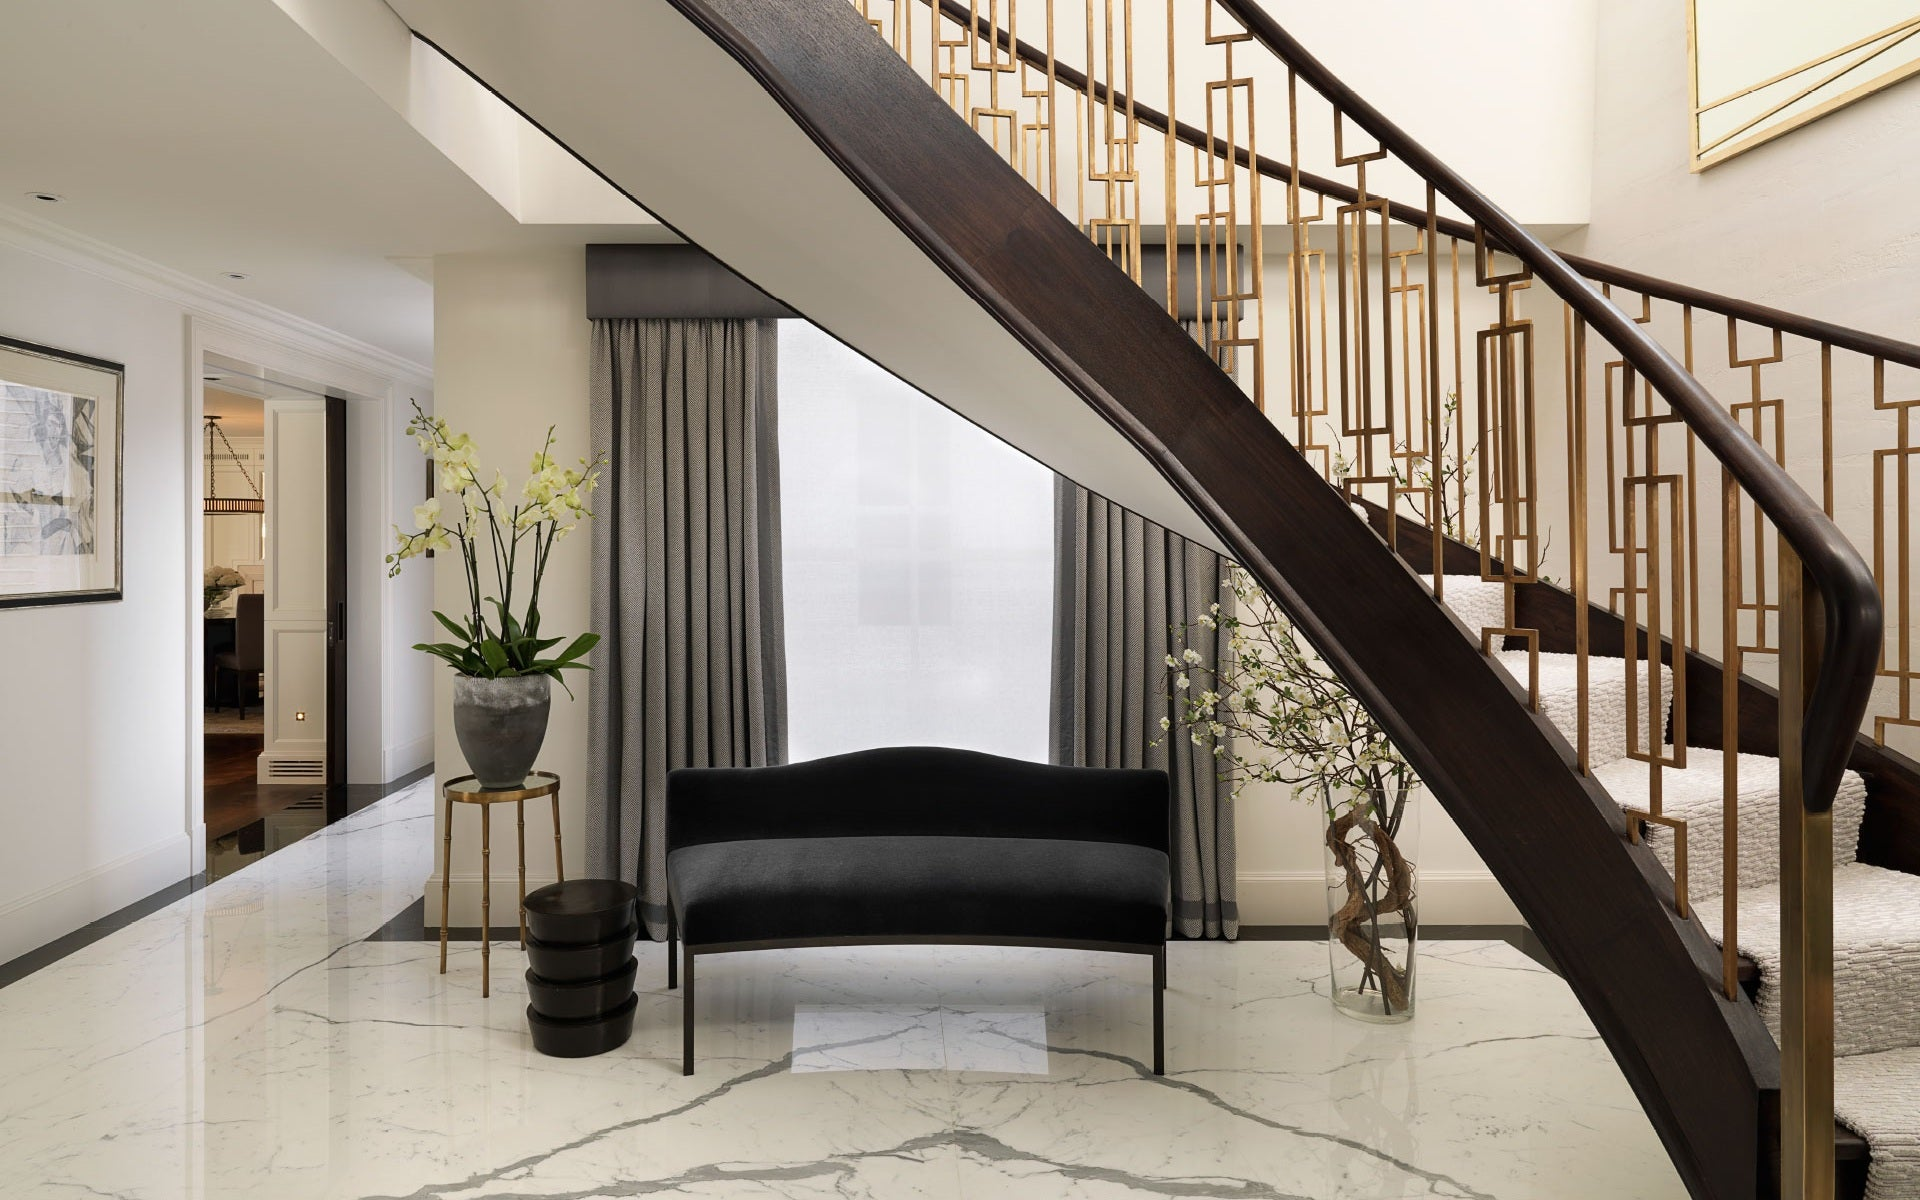 Beautiful Staircase Ideas For Your Home - carpeted riser and tread staircase - LuxDeco.com Style Guide